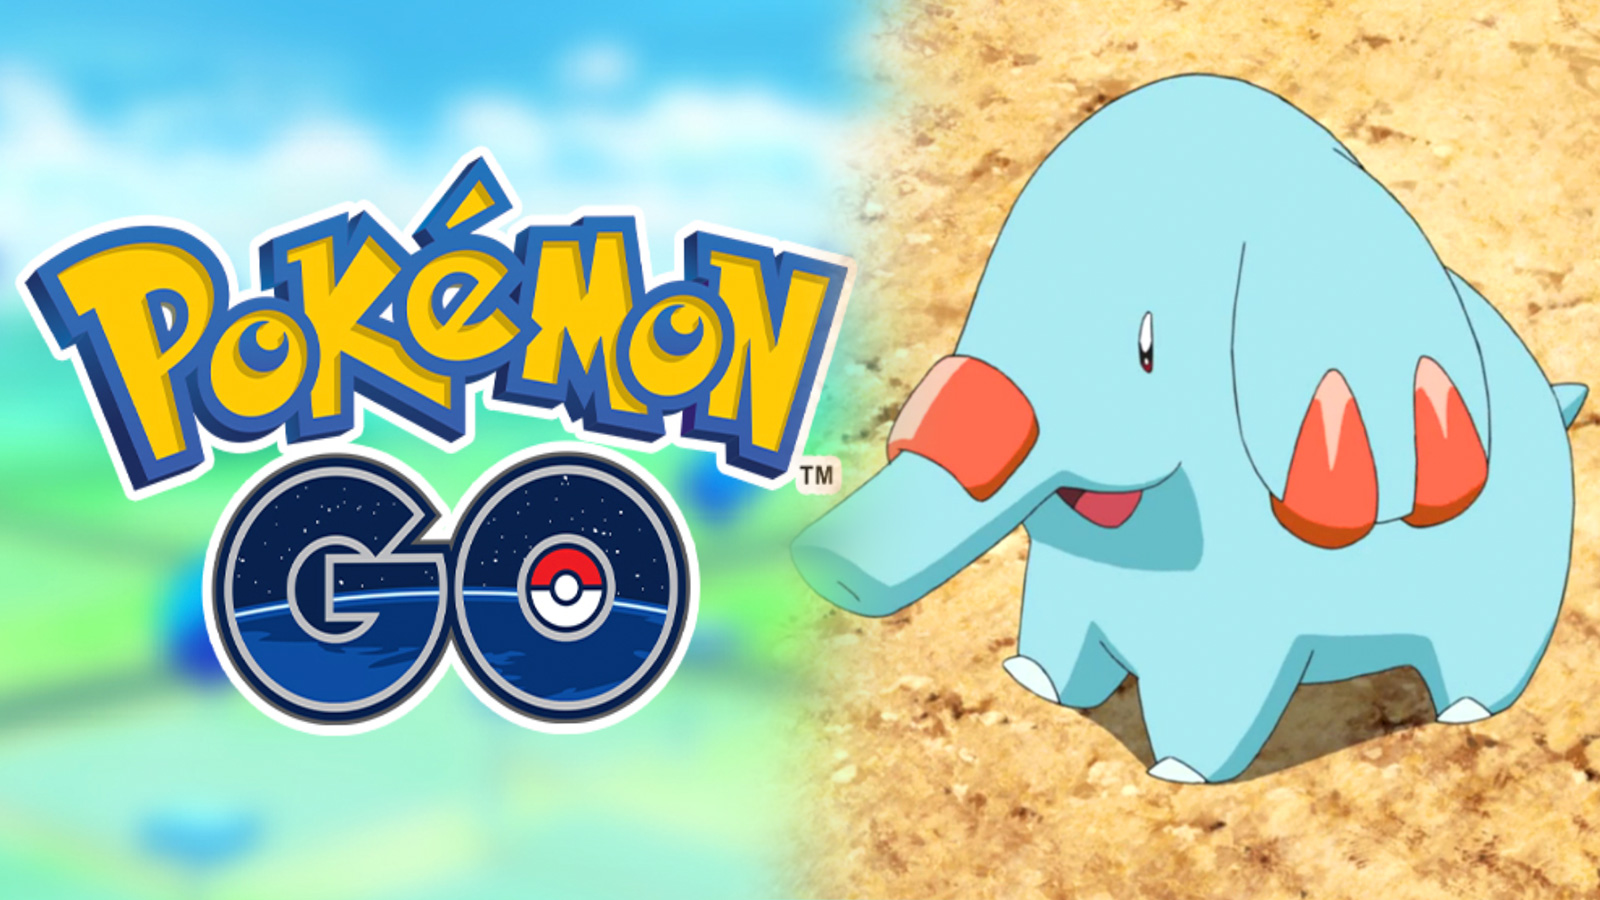 Screenshot of Pokemon Go logo next to Phanpy from Pokemon anime.